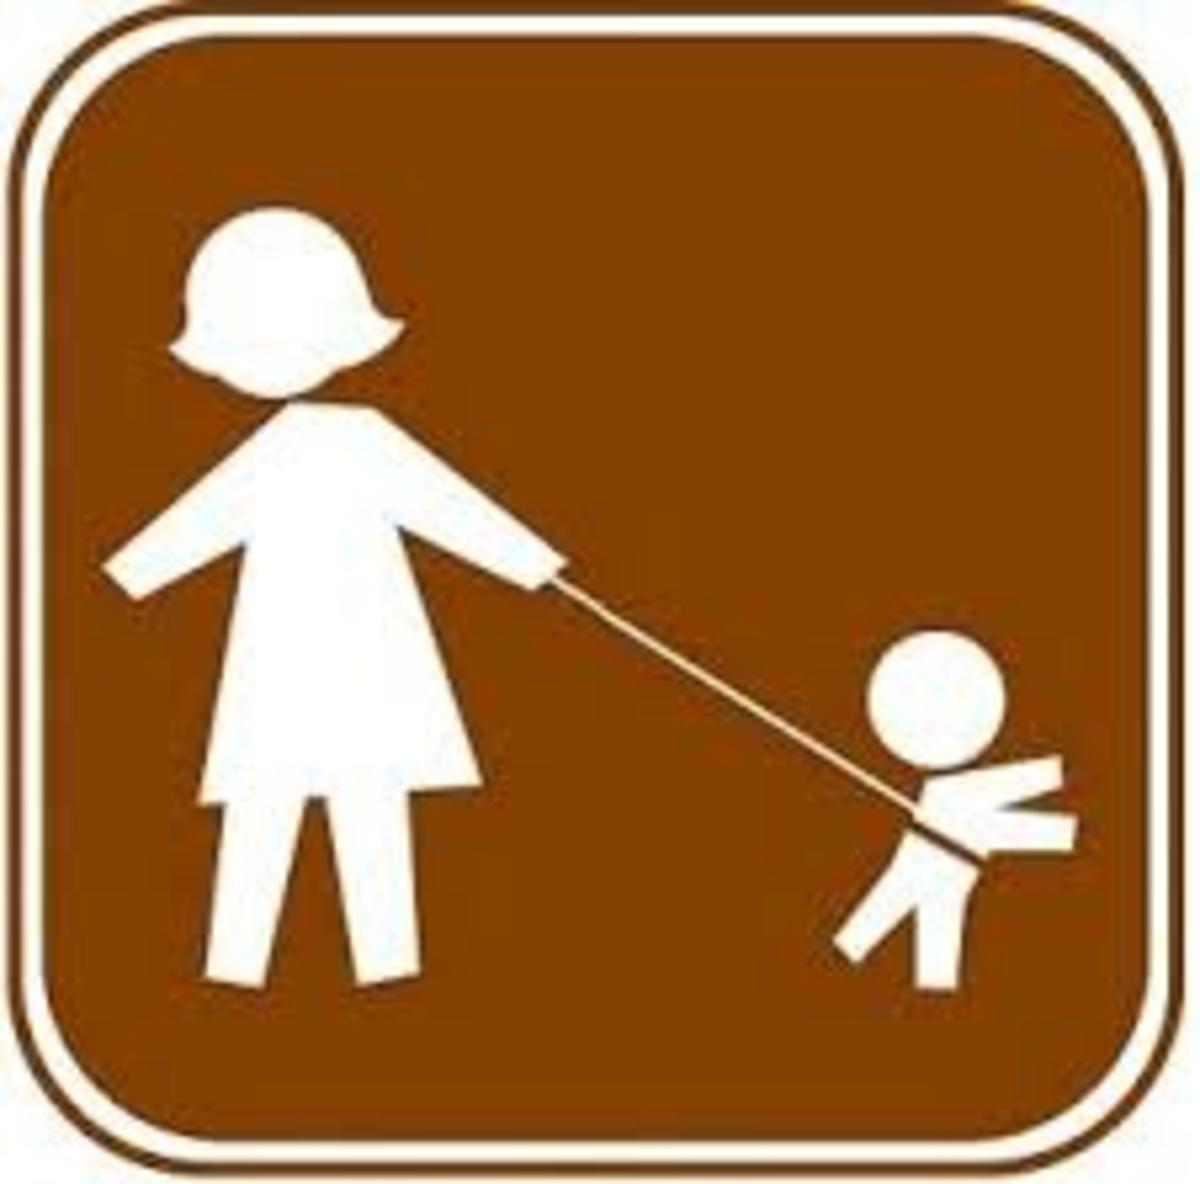 Such parents can be classified as OVERCONTROLLING.They believe that they must be in charge 24/7/365 and 100% of the time regarding child rearing.